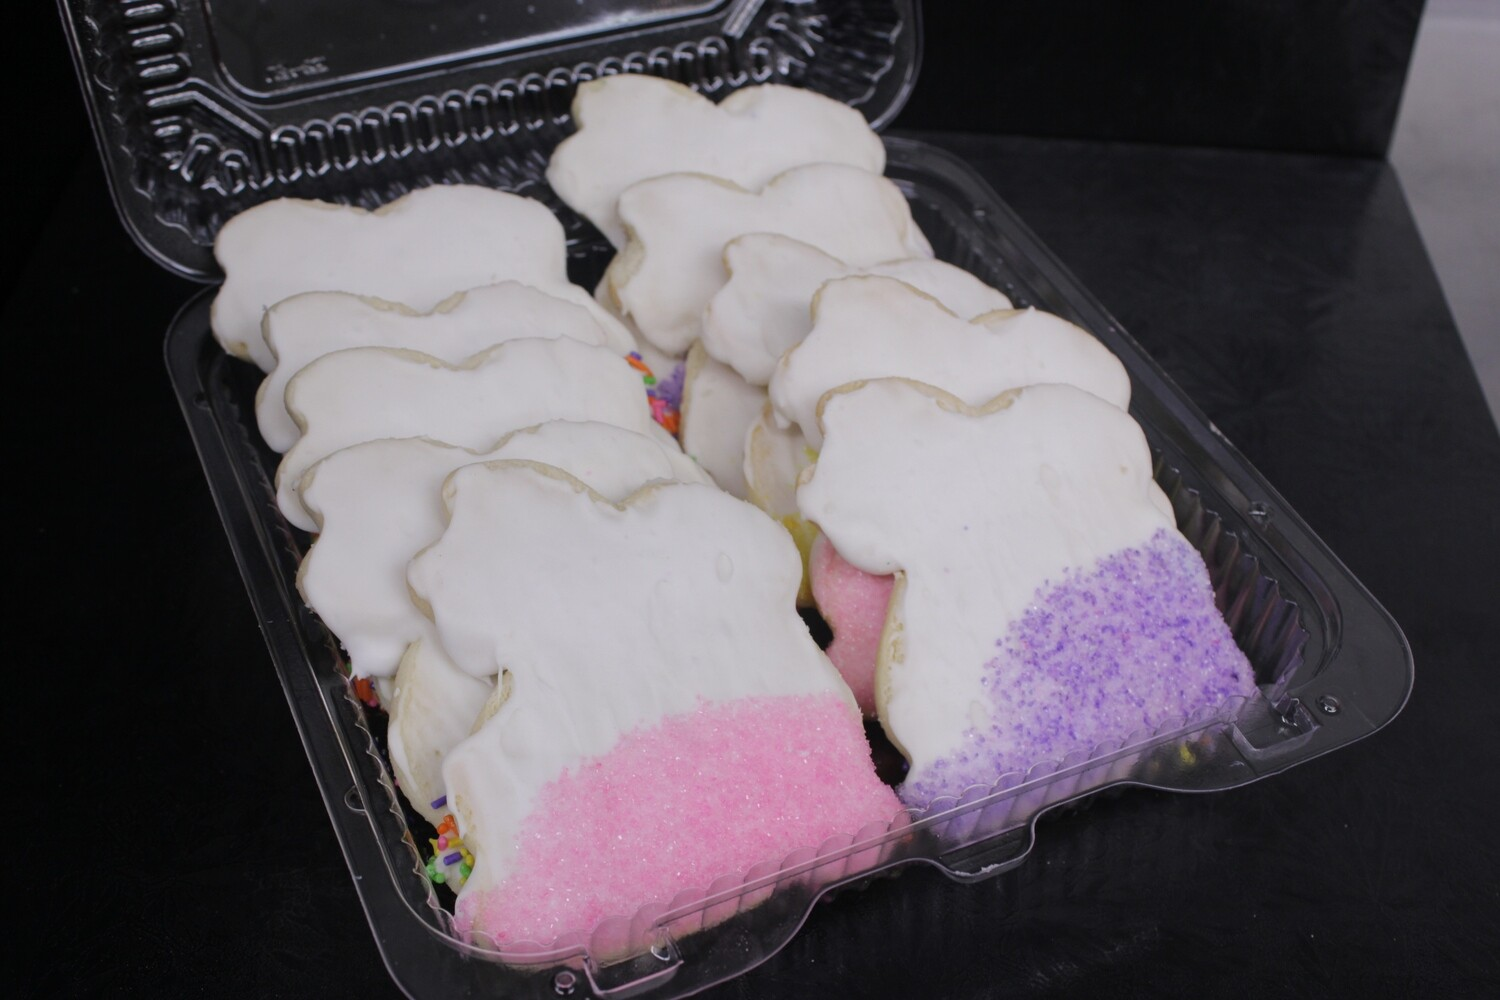 Iced Bunny Cookies - 10 pack